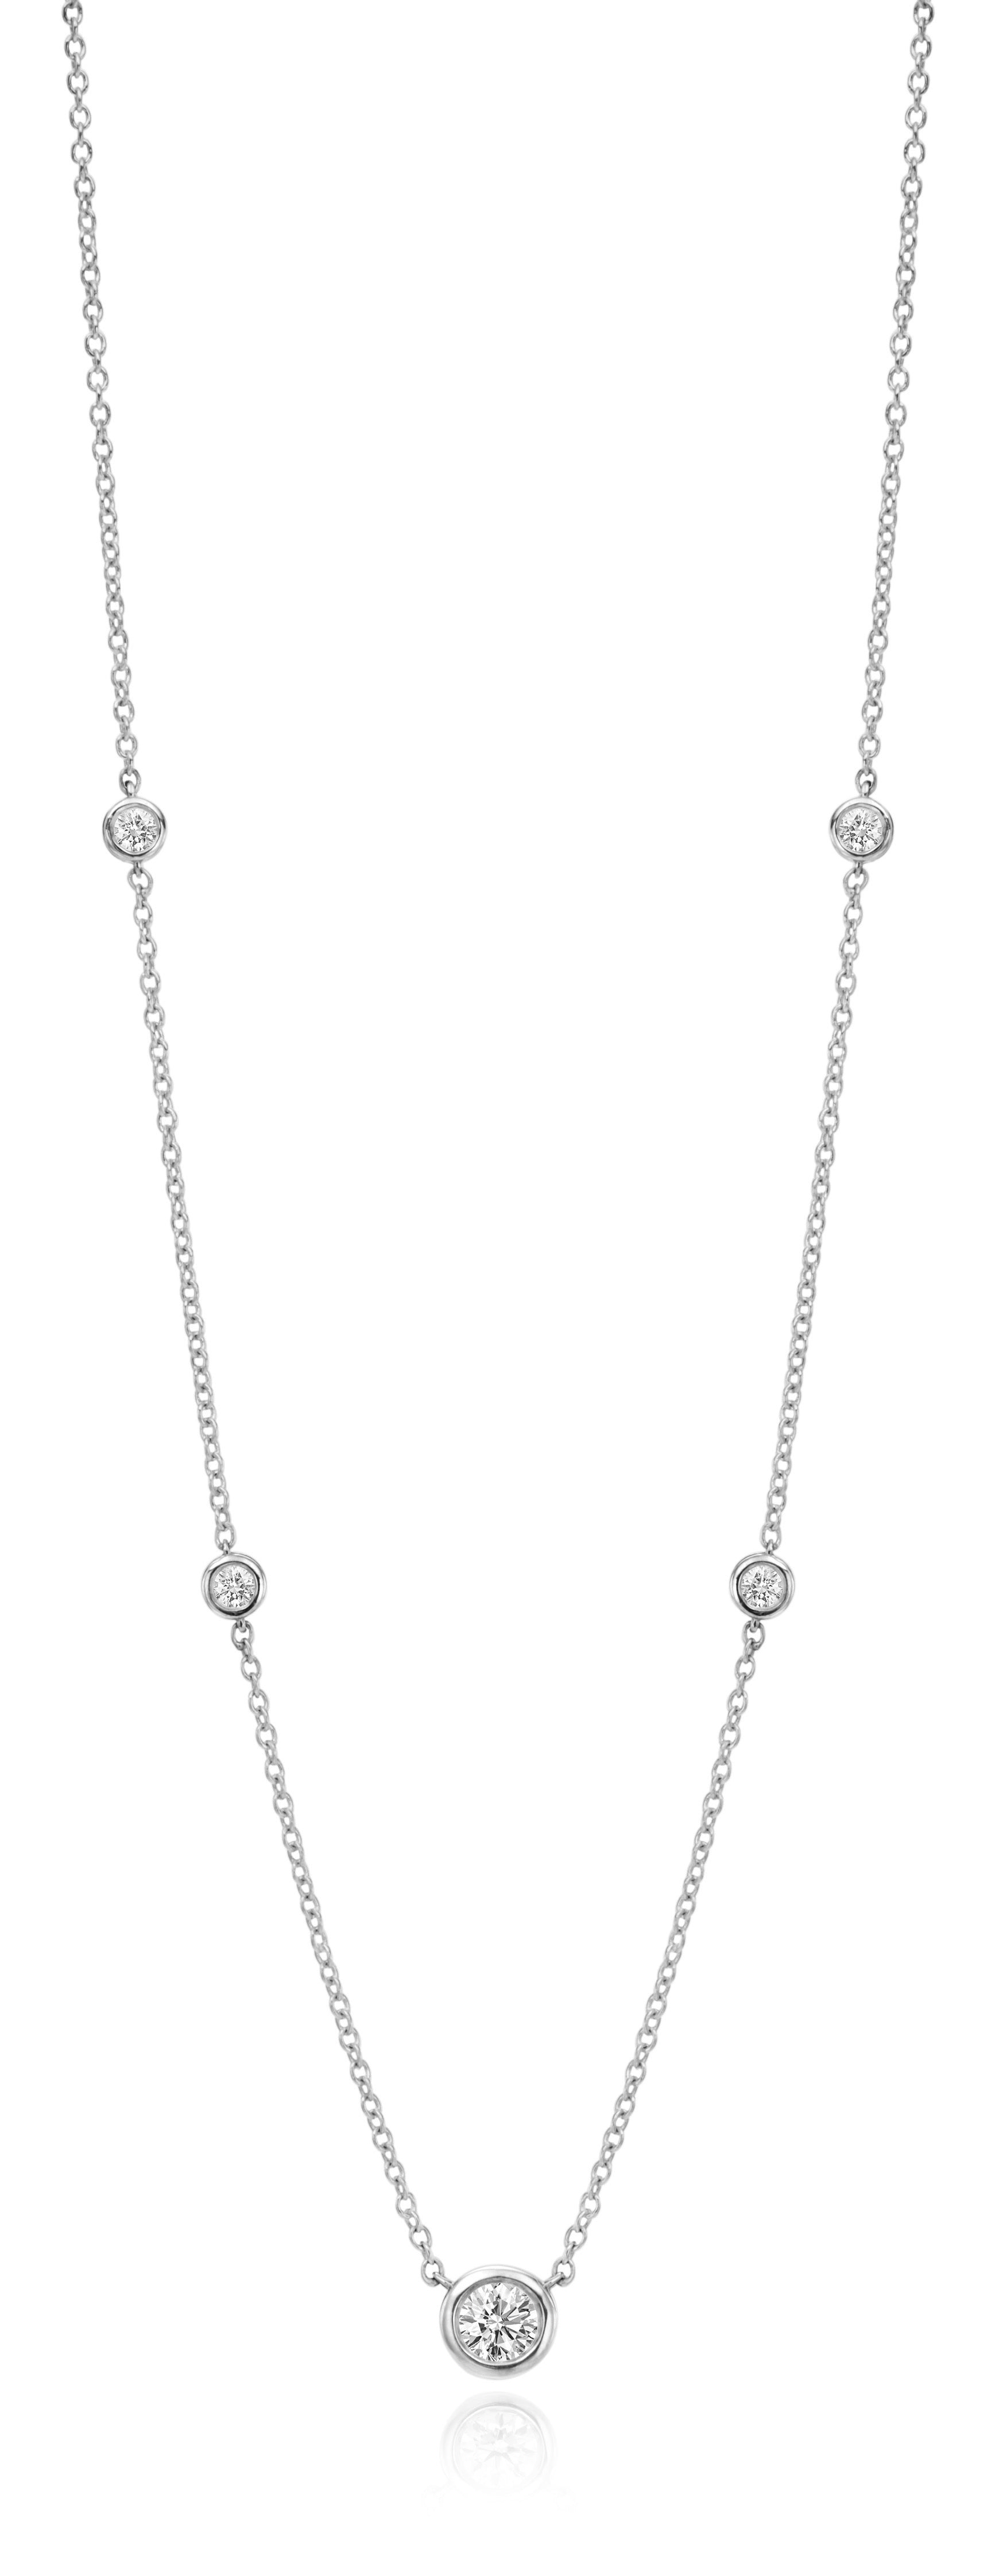 5 Diamond Graduated Station Necklace designed by David Gardner, 18K white gold